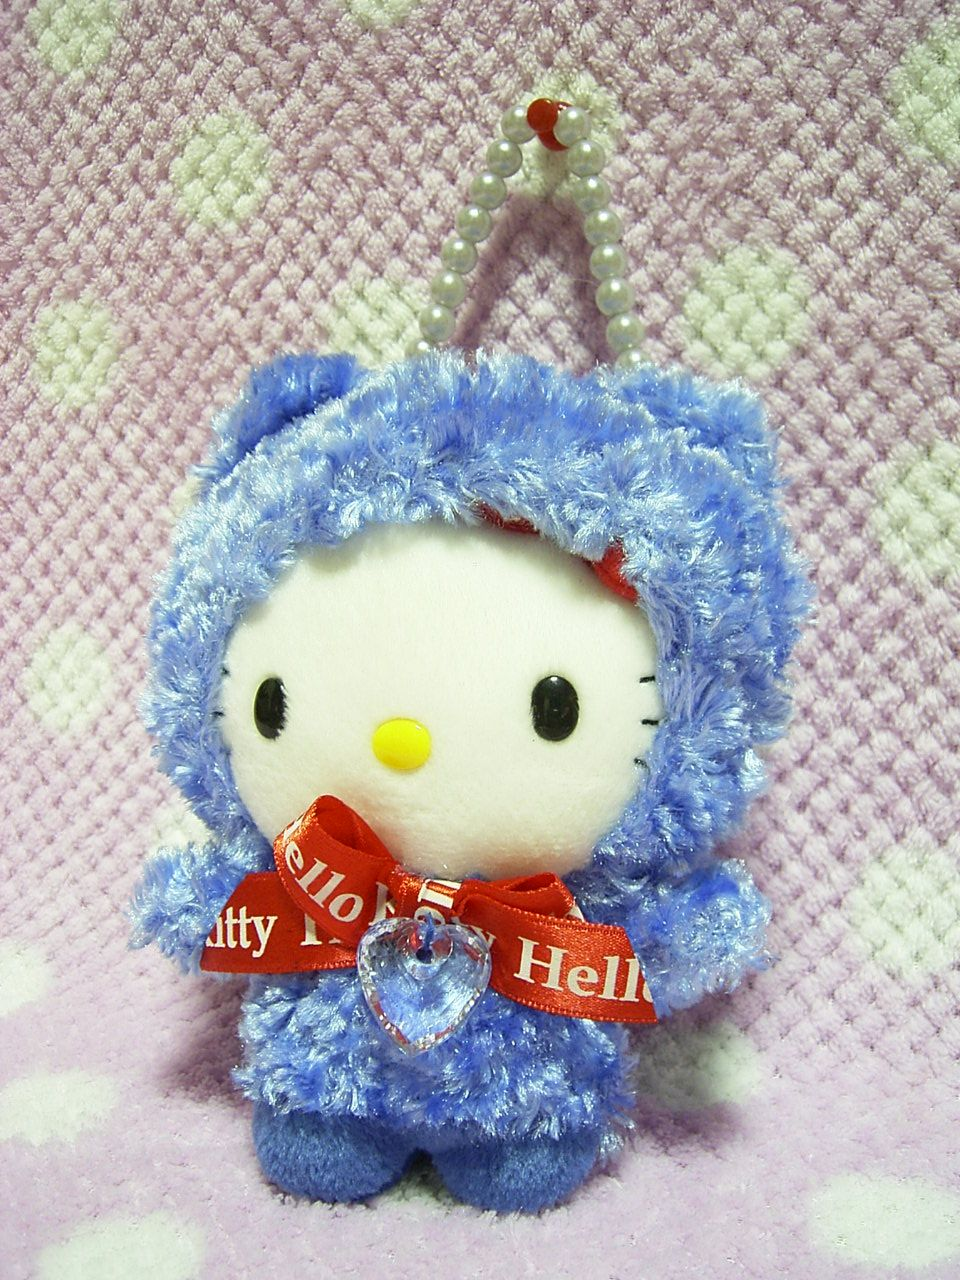 """Sanrio Japan Bear HELLO KITTY CUTE Purse Bag Pouch w/ Lucky Heart Stone 2004 Blue : *Condition* Unused, Released in 2004, Sanrio Japan Licensed! *Size* About 5.9"""" (15cm) in height. 29.99-38.99 (5.90/6.90/8.90)"""